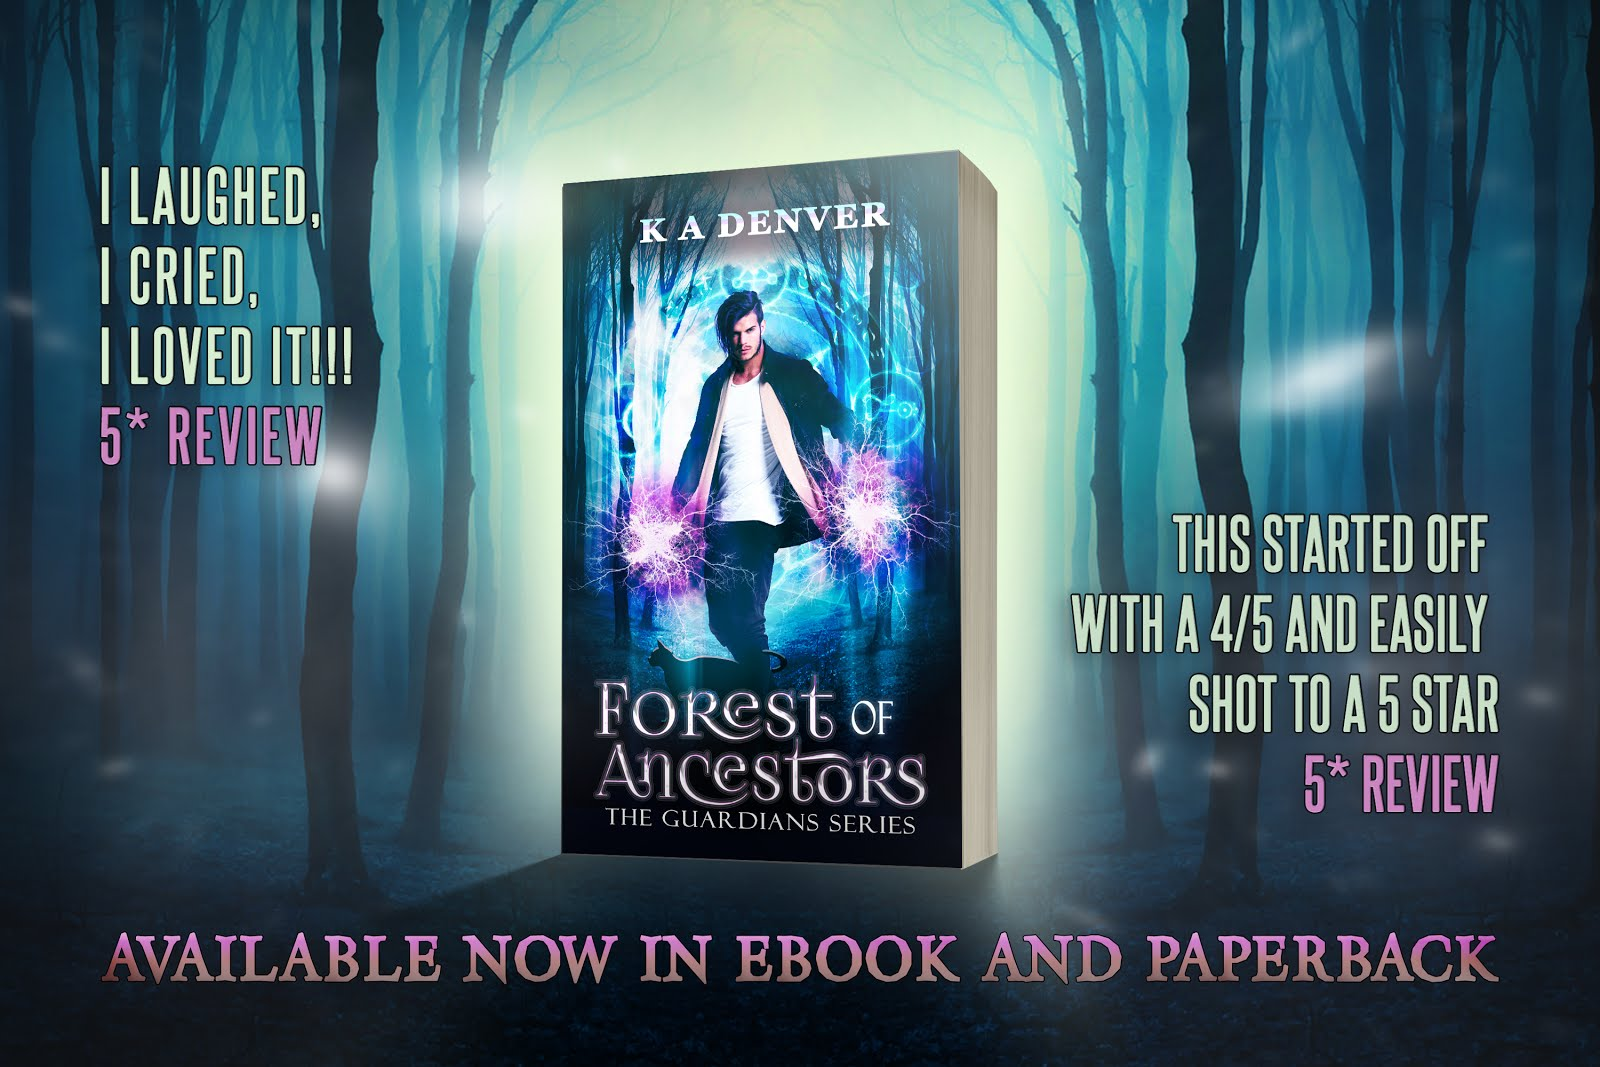 Forest of Ancestors